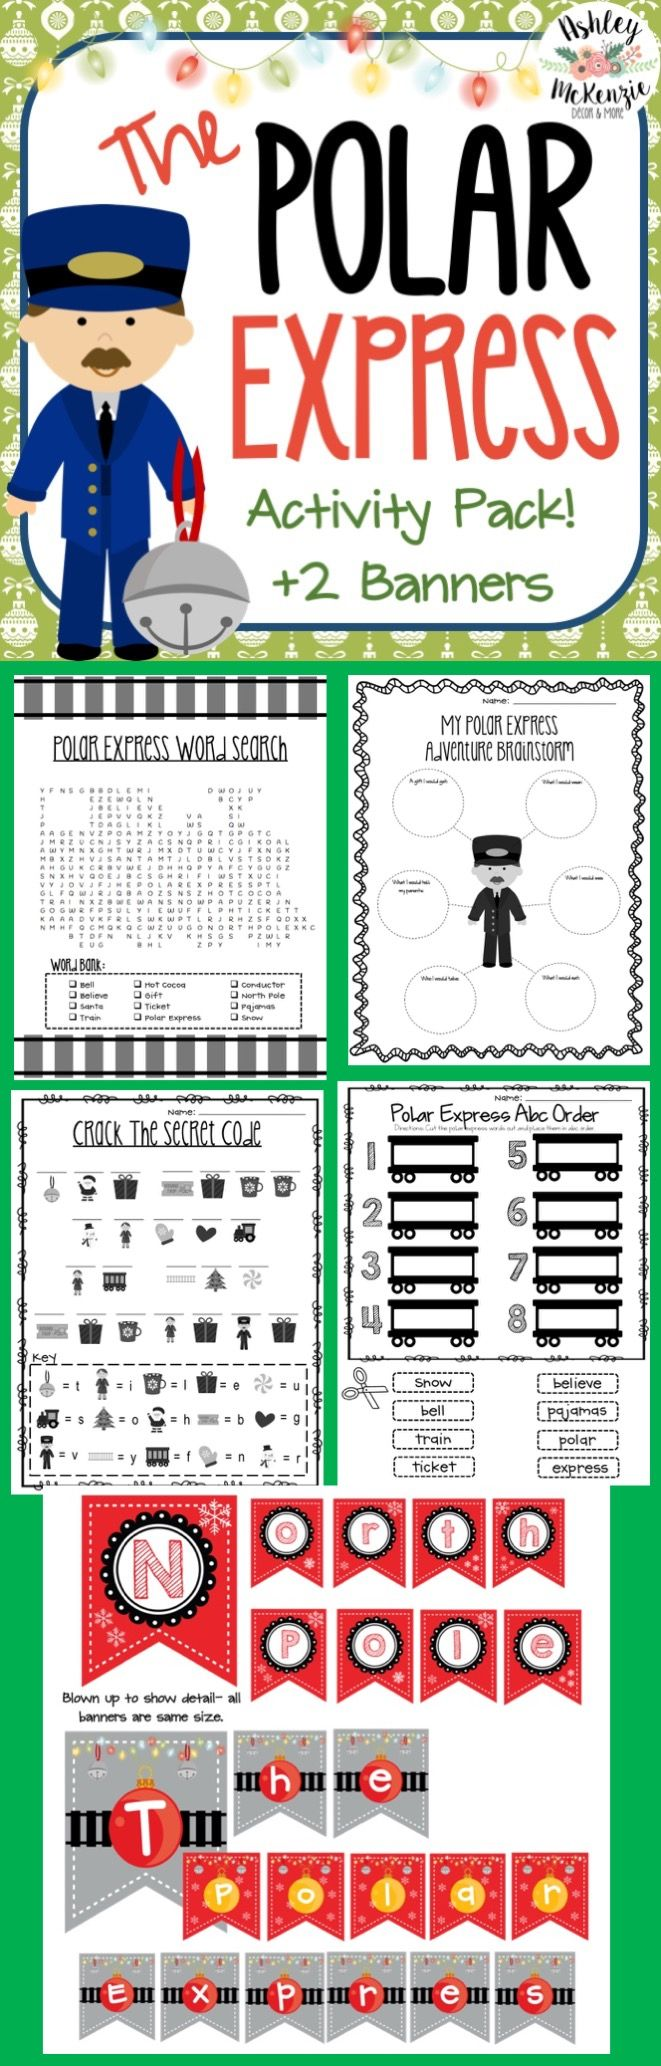 The Polar Express Activities Pack! Repinned by SOS Inc. Resources pinterest.com/sostherapy/. 13d